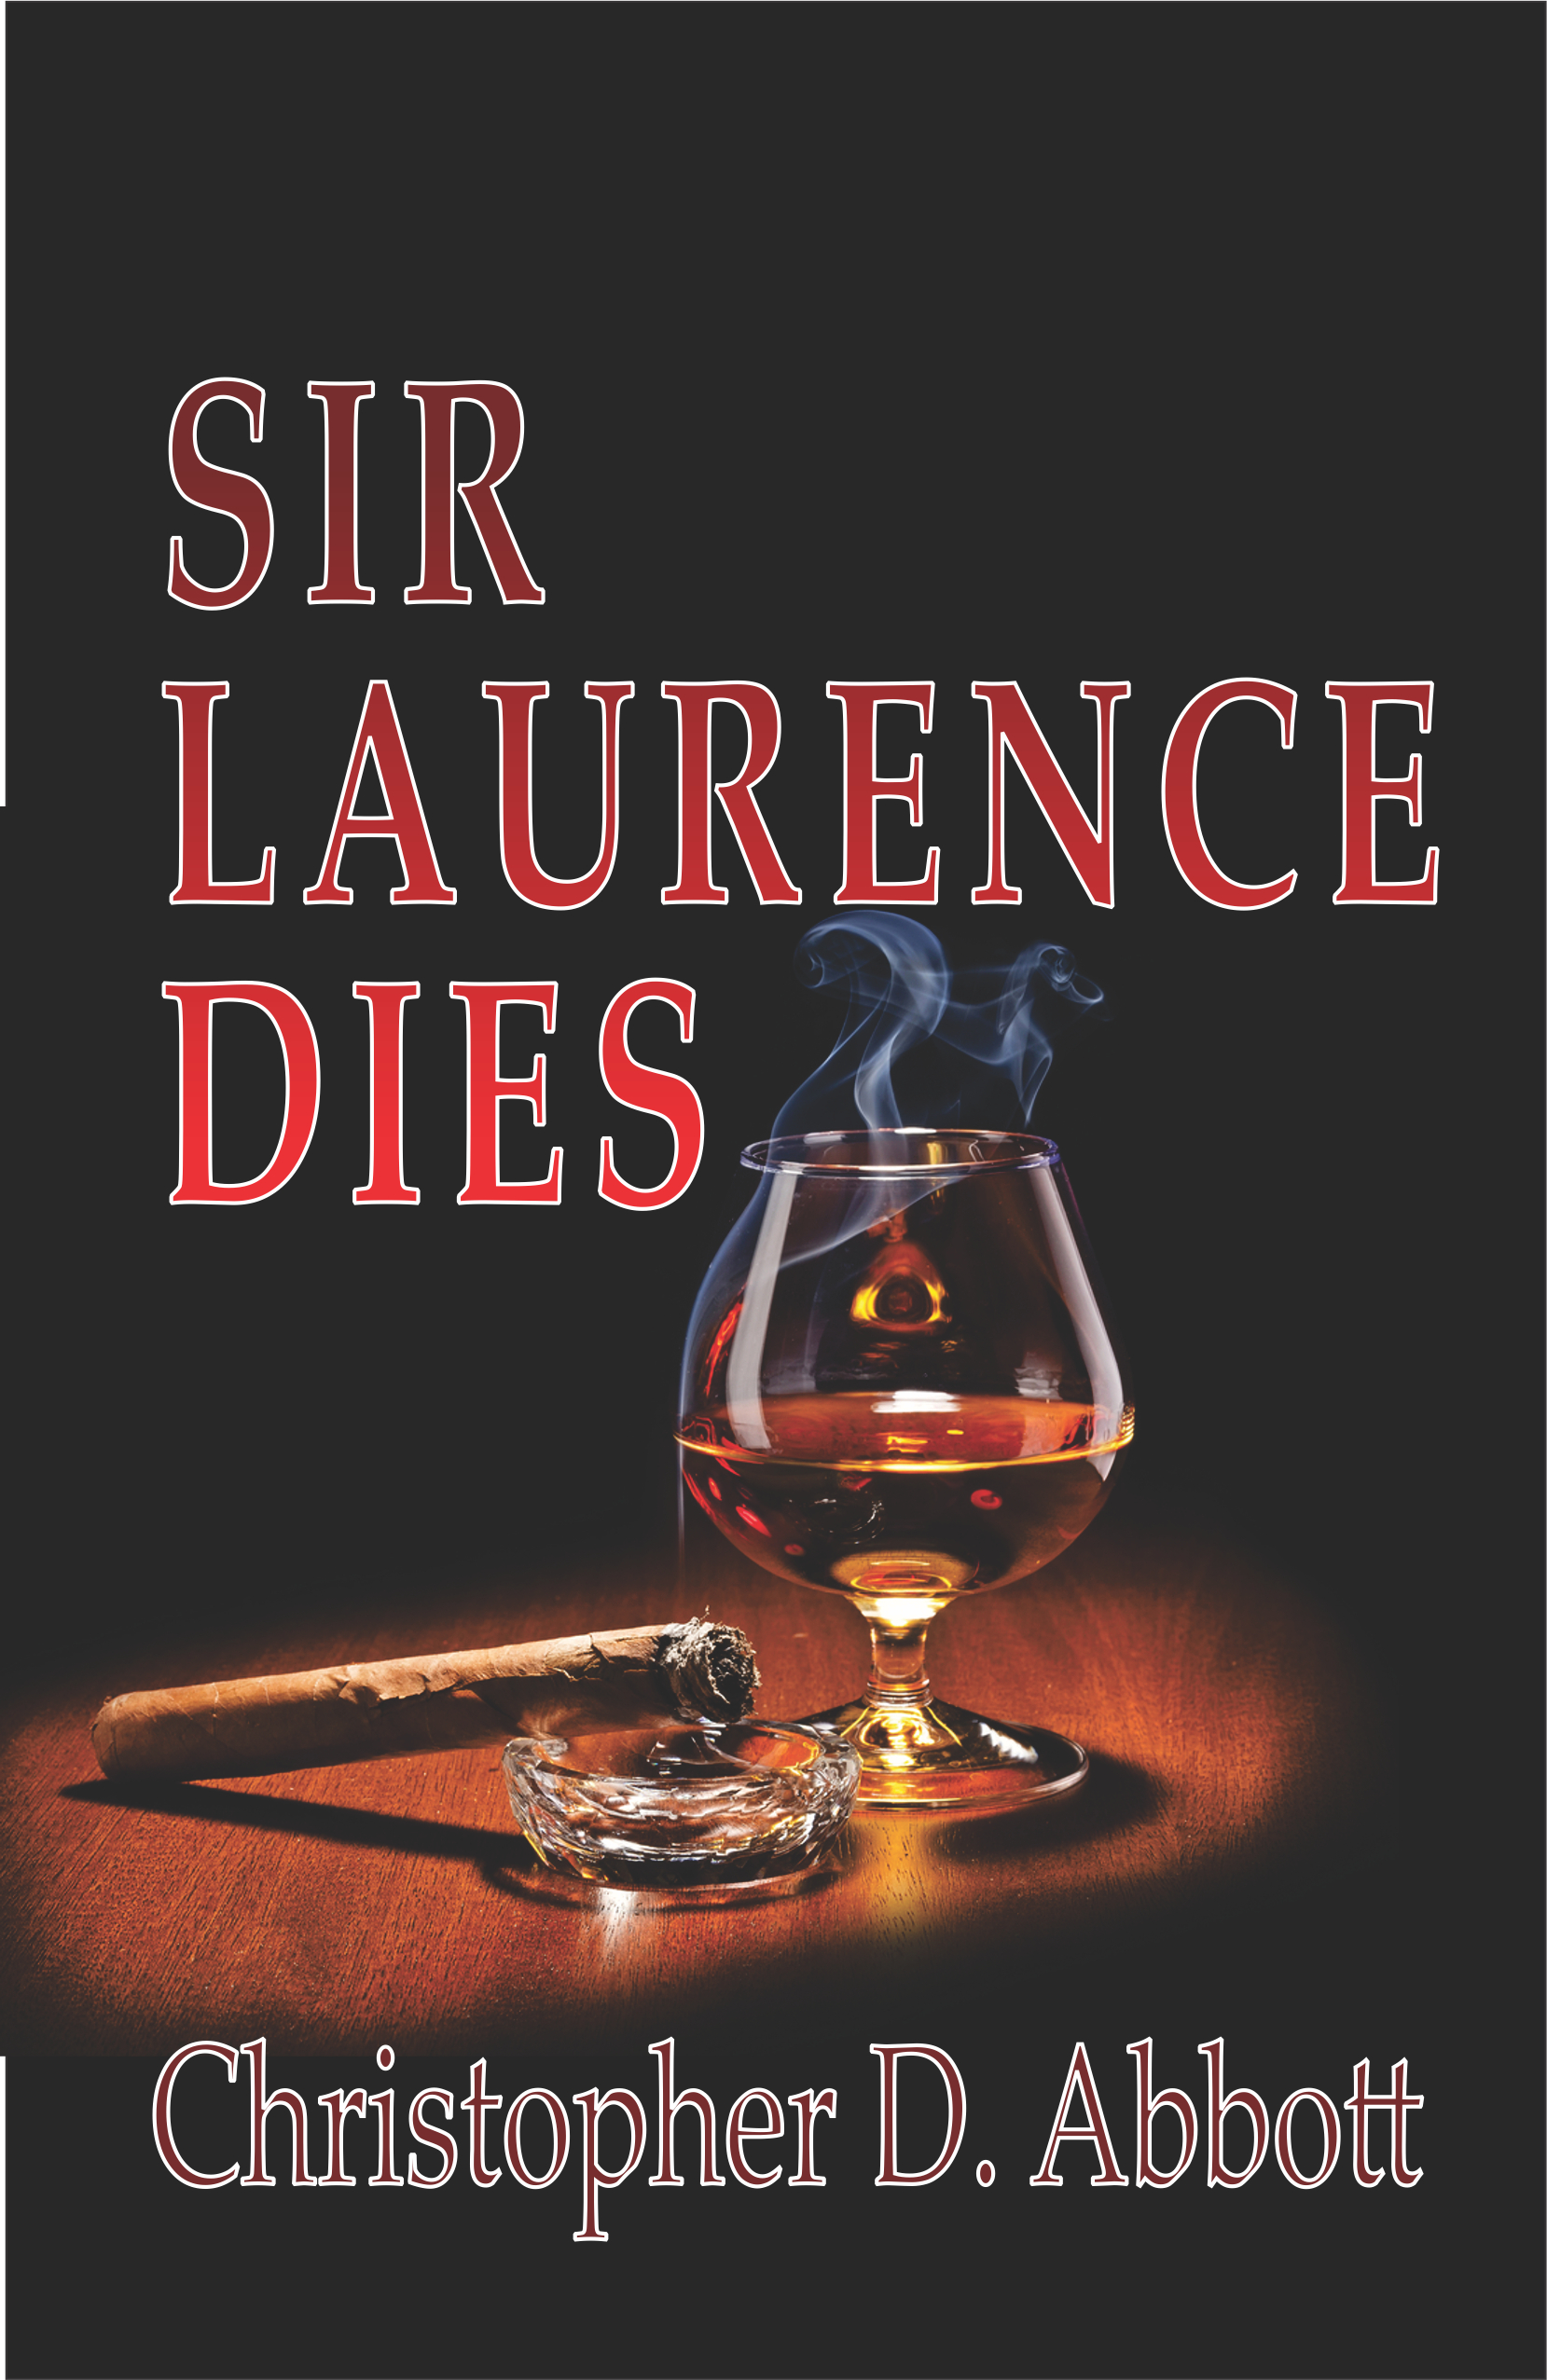 Sir Lawrence Dies